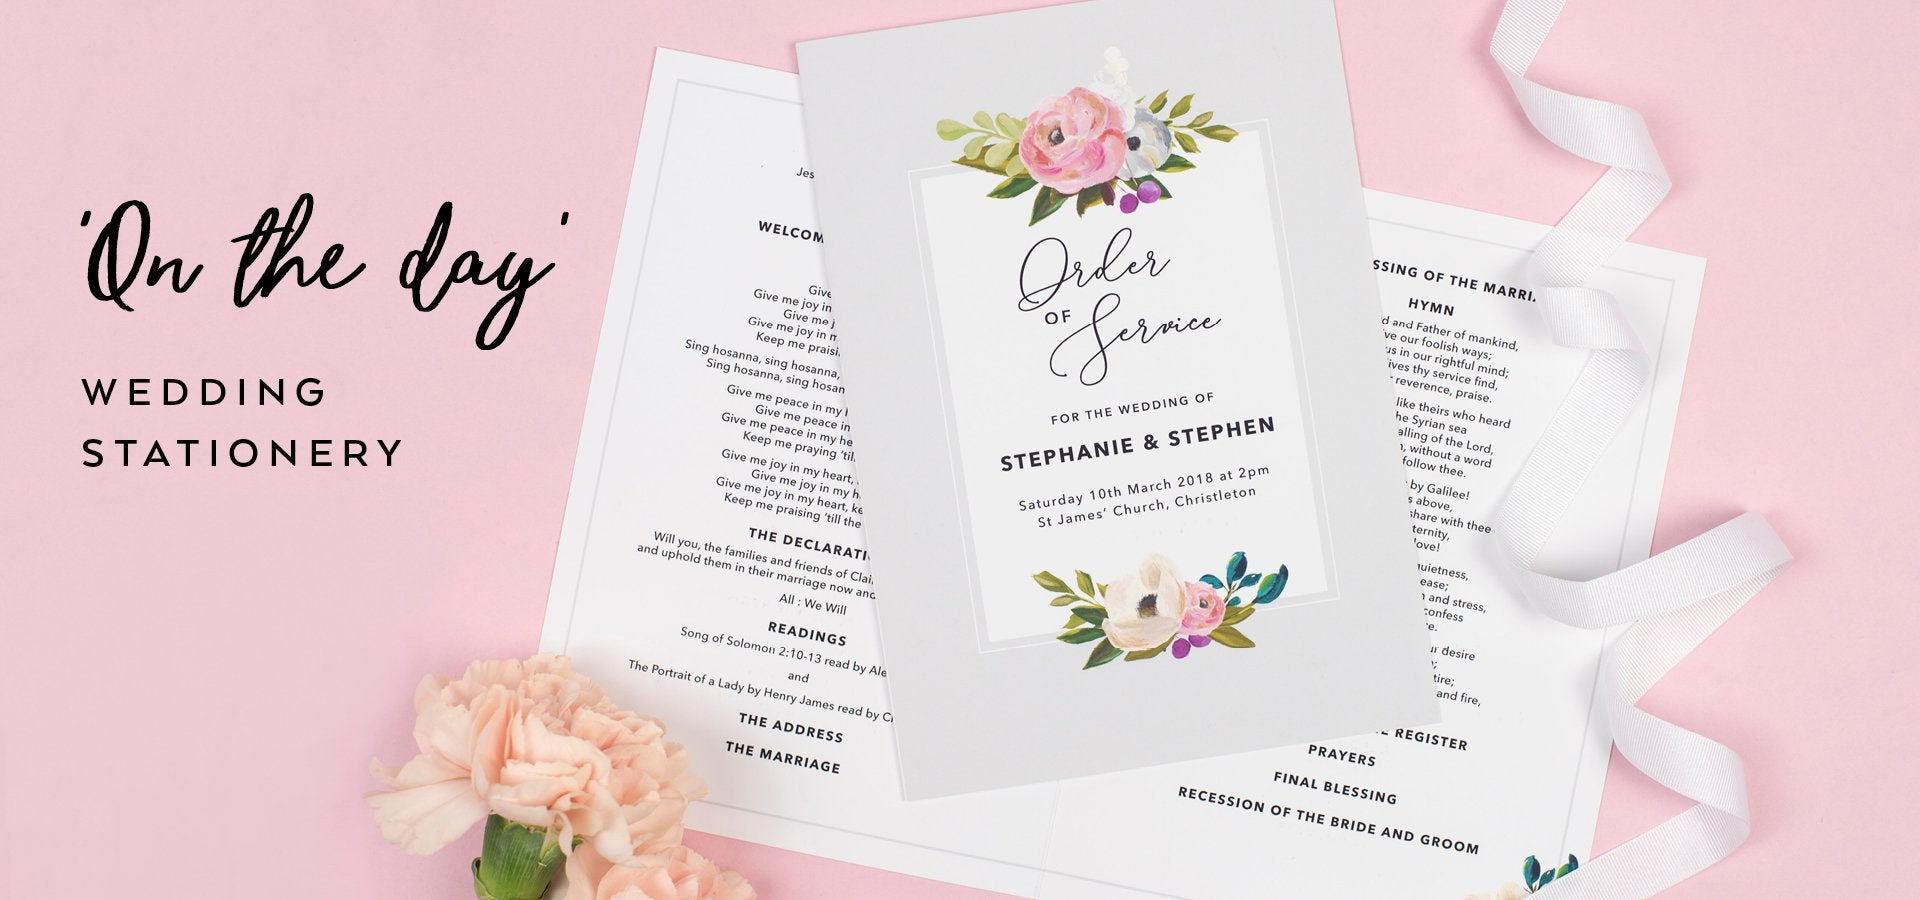 Wedding Stationery and Paper Goods – Project Pretty